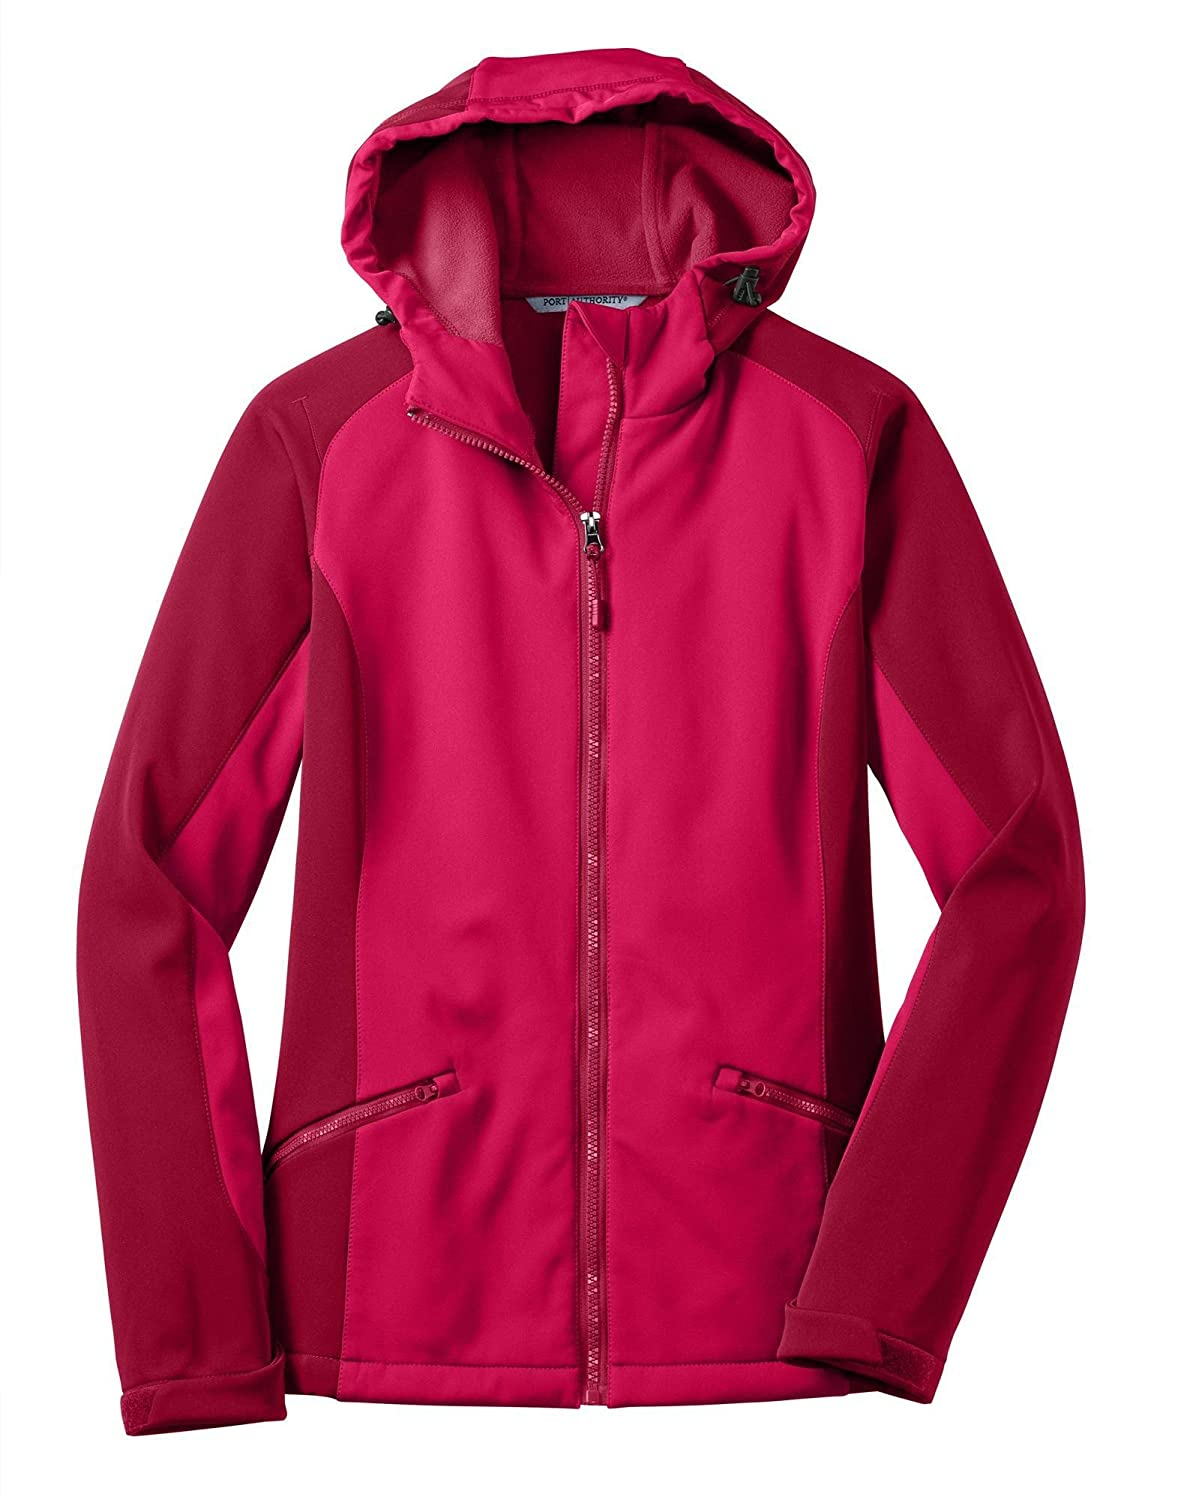 Port Authority L312 Ladies Hooded Soft Shell Jacket - Dark Fuchsia/Loganberry - L